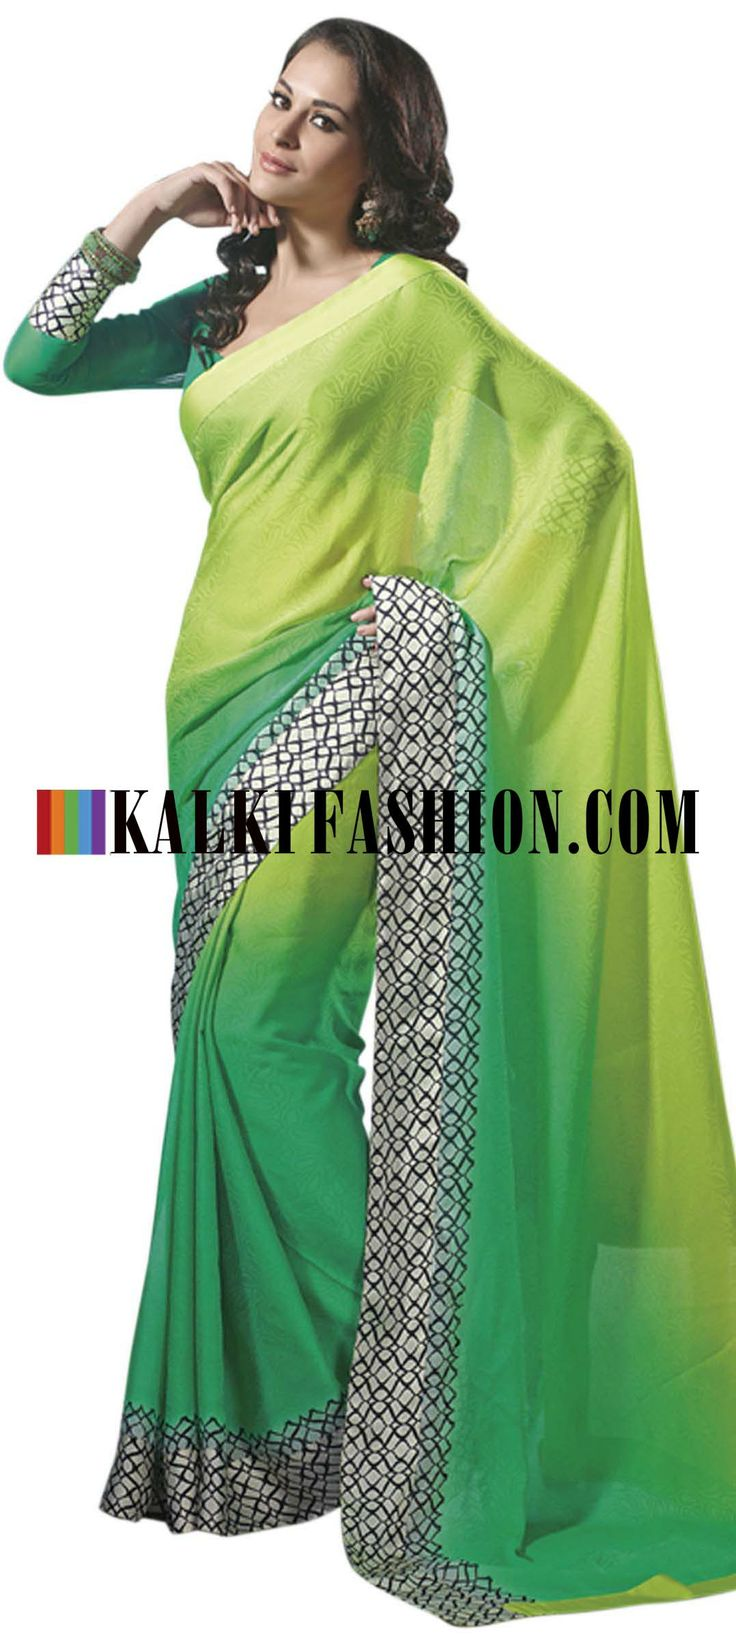 Buy Online from the link below. We ship worldwide (Free Shipping over US$100) http://www.kalkifashion.com/shaded-green-saree-with-printed-border.html Shaded green saree with printed border